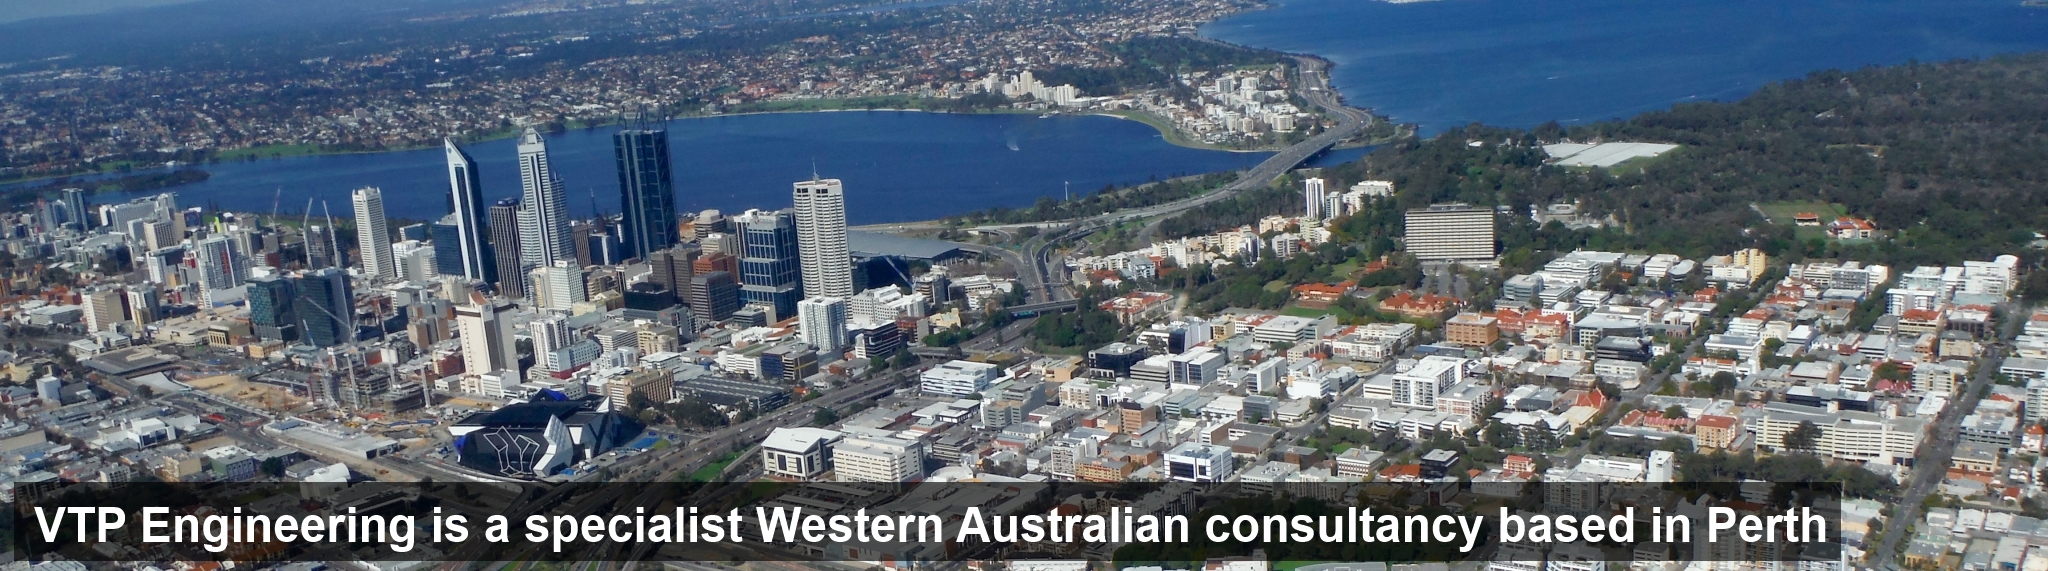 VTP Engineering is a specialist Western Australian consultancy based in Perth